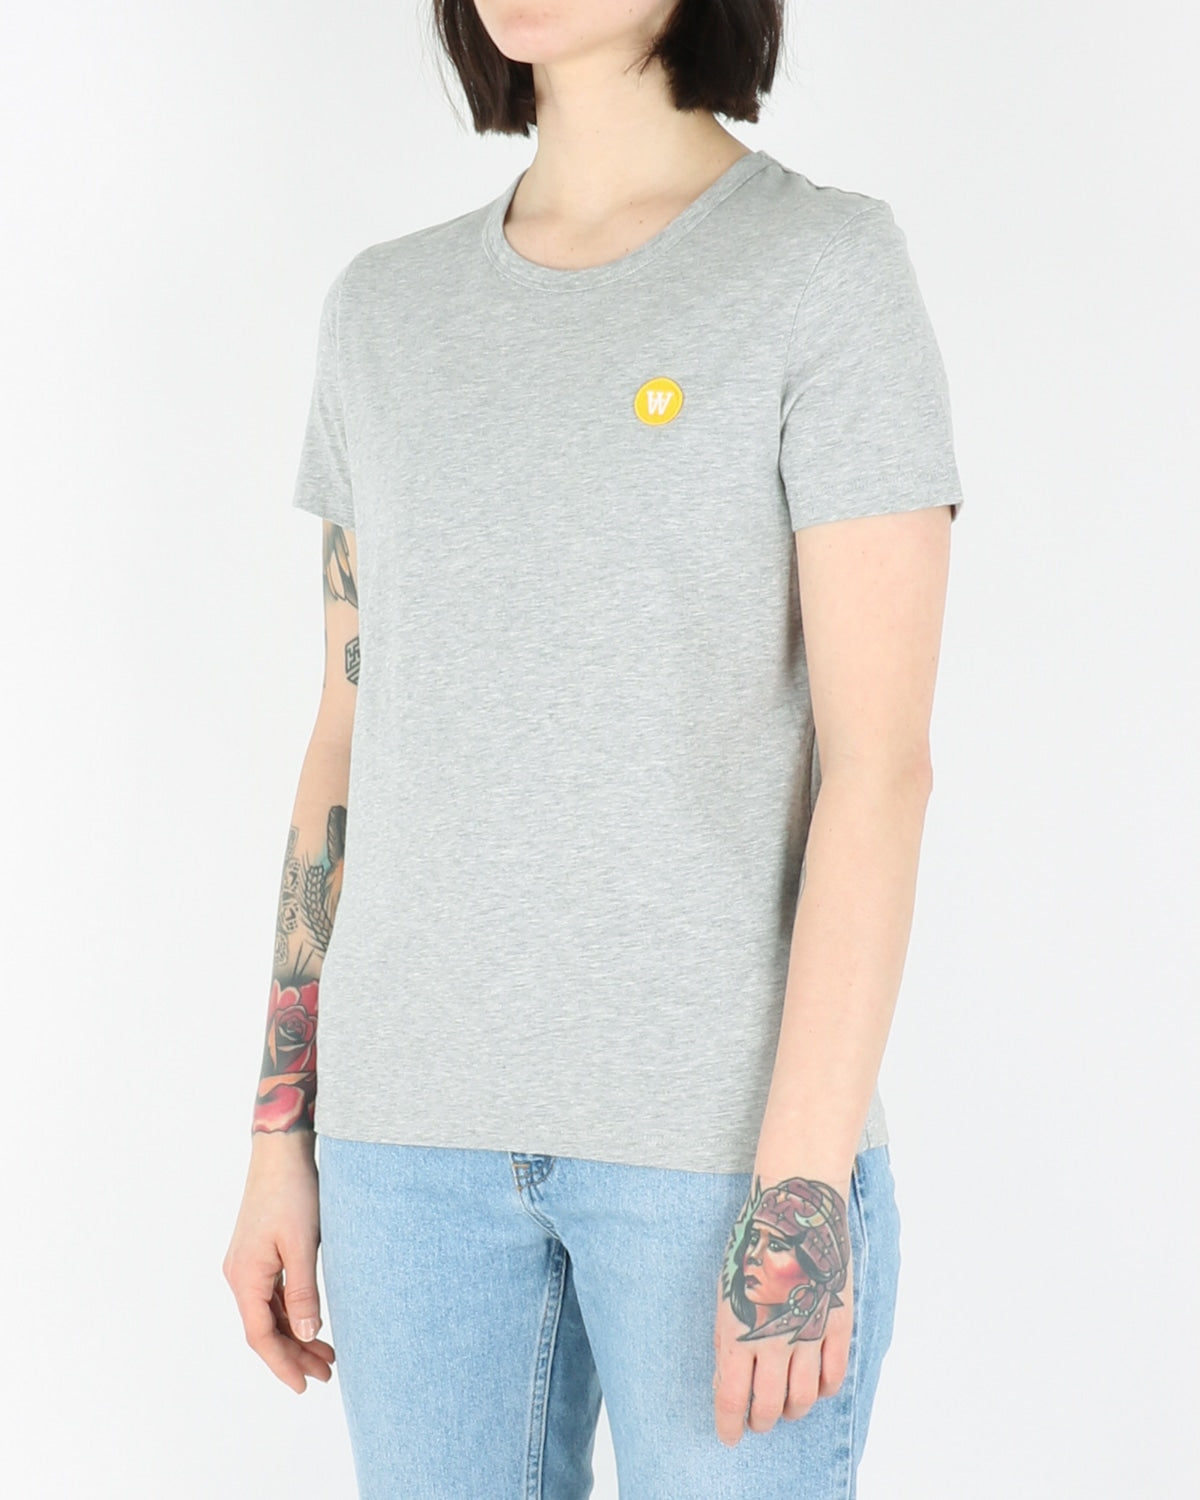 wood wood_uma t-shirt_grey melange_view_2_3